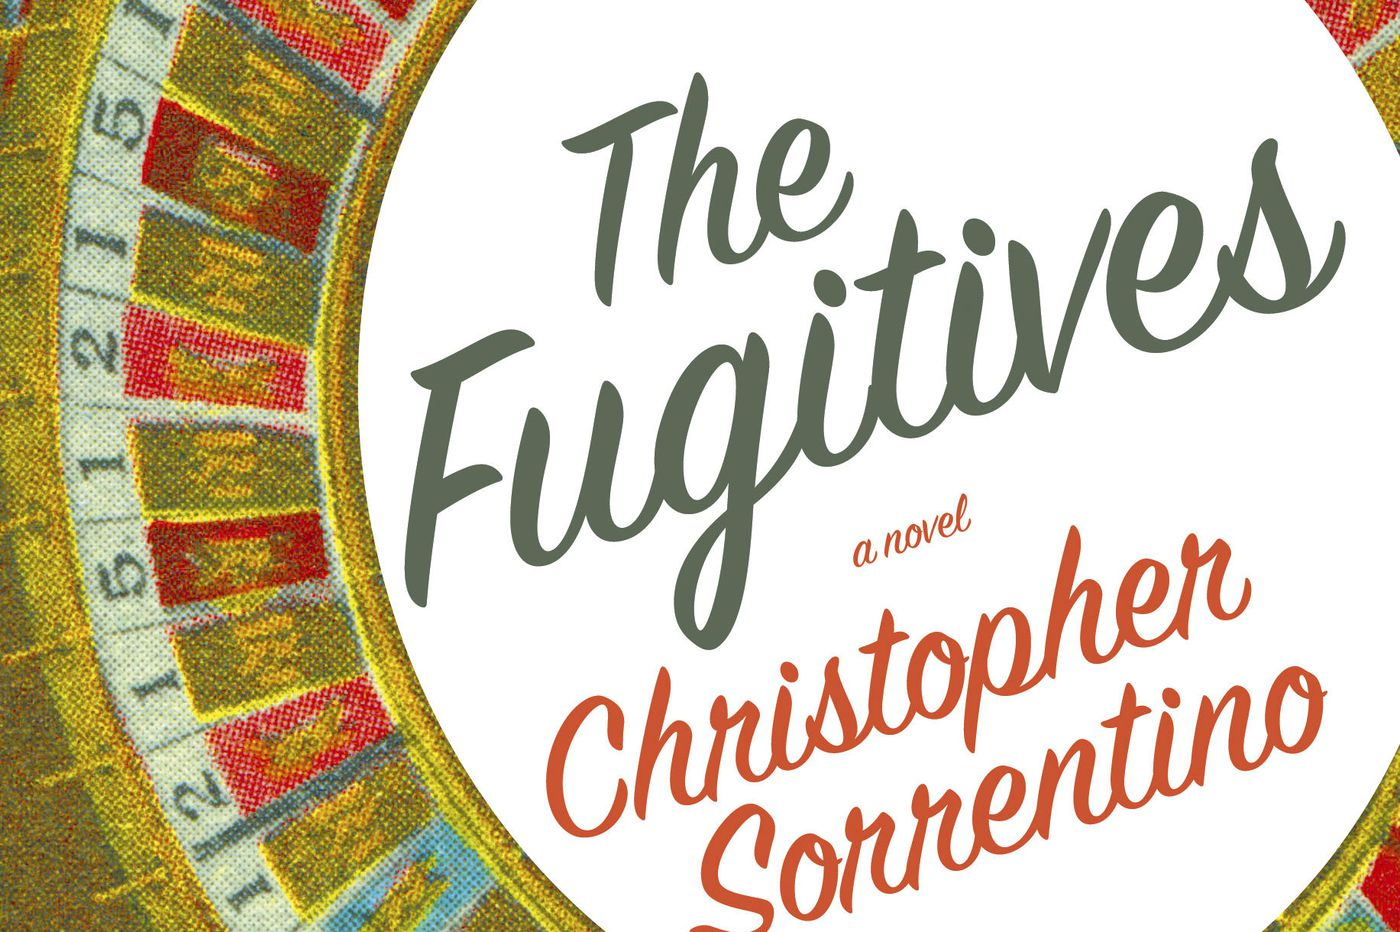 'The Fugitives': Romance, comedy, and, maybe, a ghost